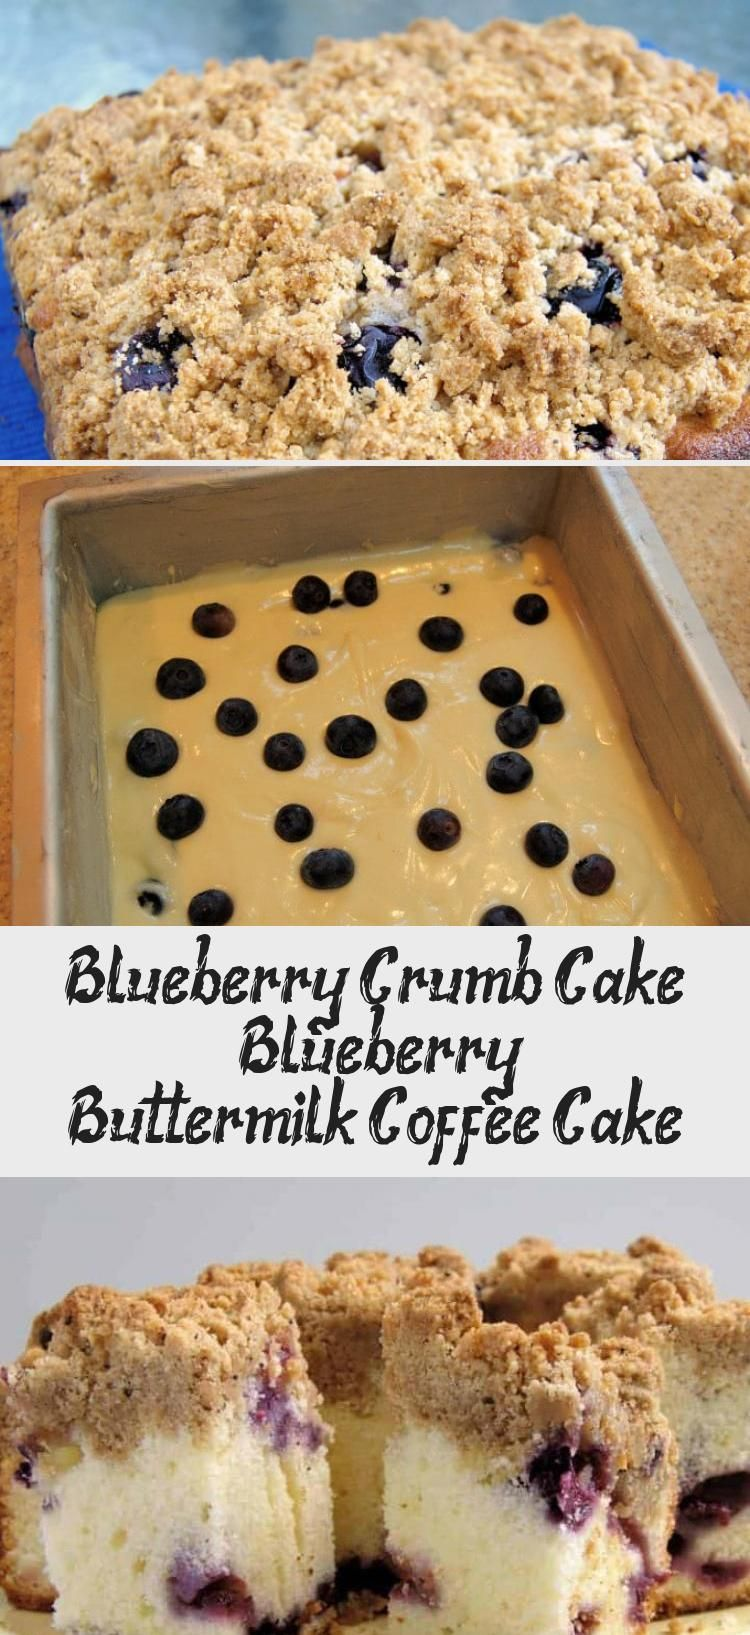 Blueberry Crumb Cake Soft Blueberry Buttermilk Coffee Cake Crowned With Brown Sugar Crumb Topping It In 2020 Blueberry Crumb Cake Buttermilk Coffee Cake Cake Recipes